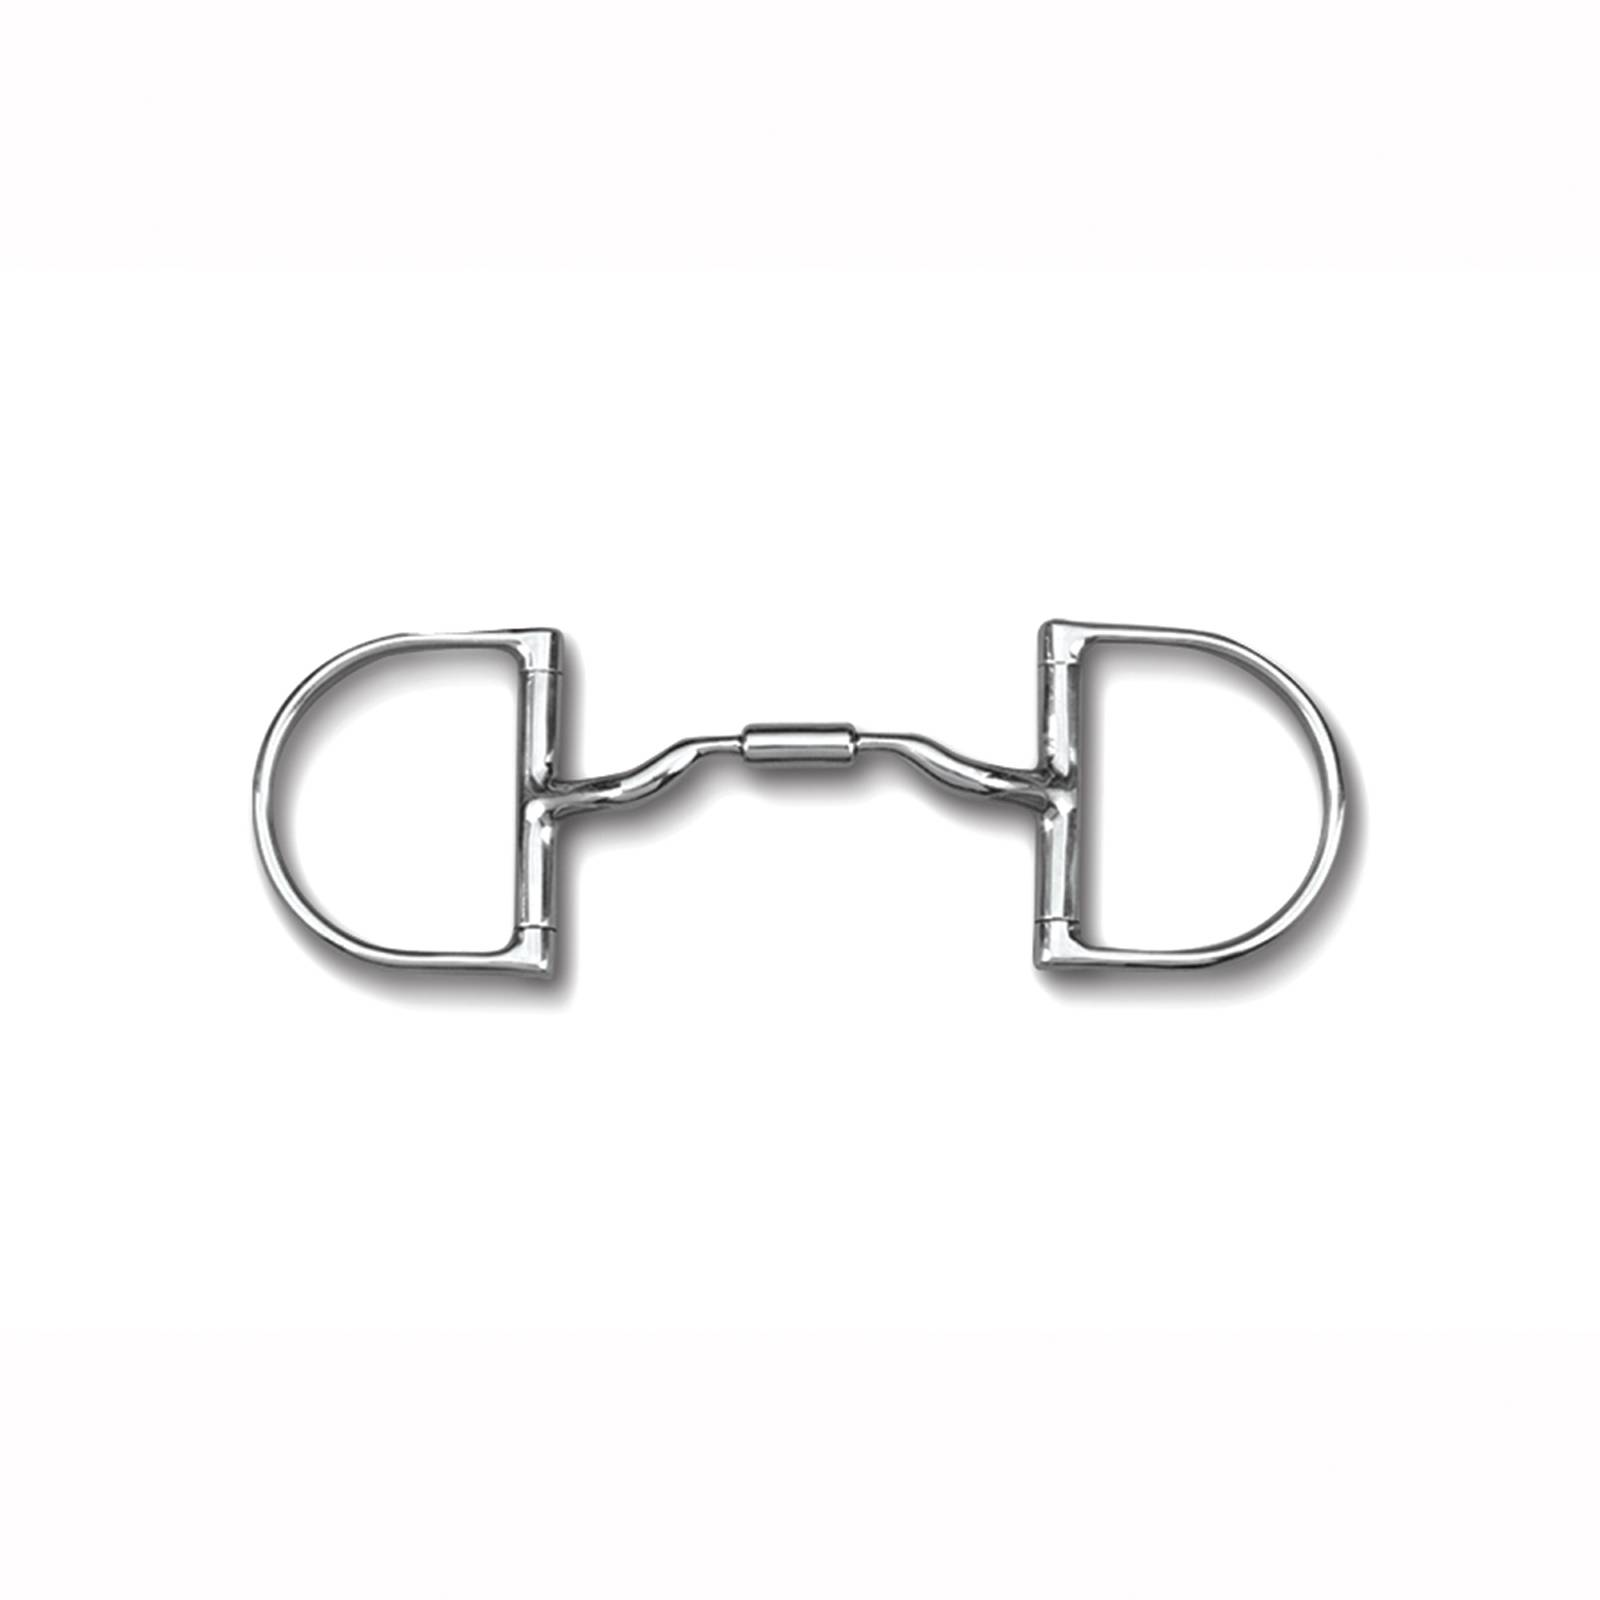 Myler English Dee Low Port Snaffle